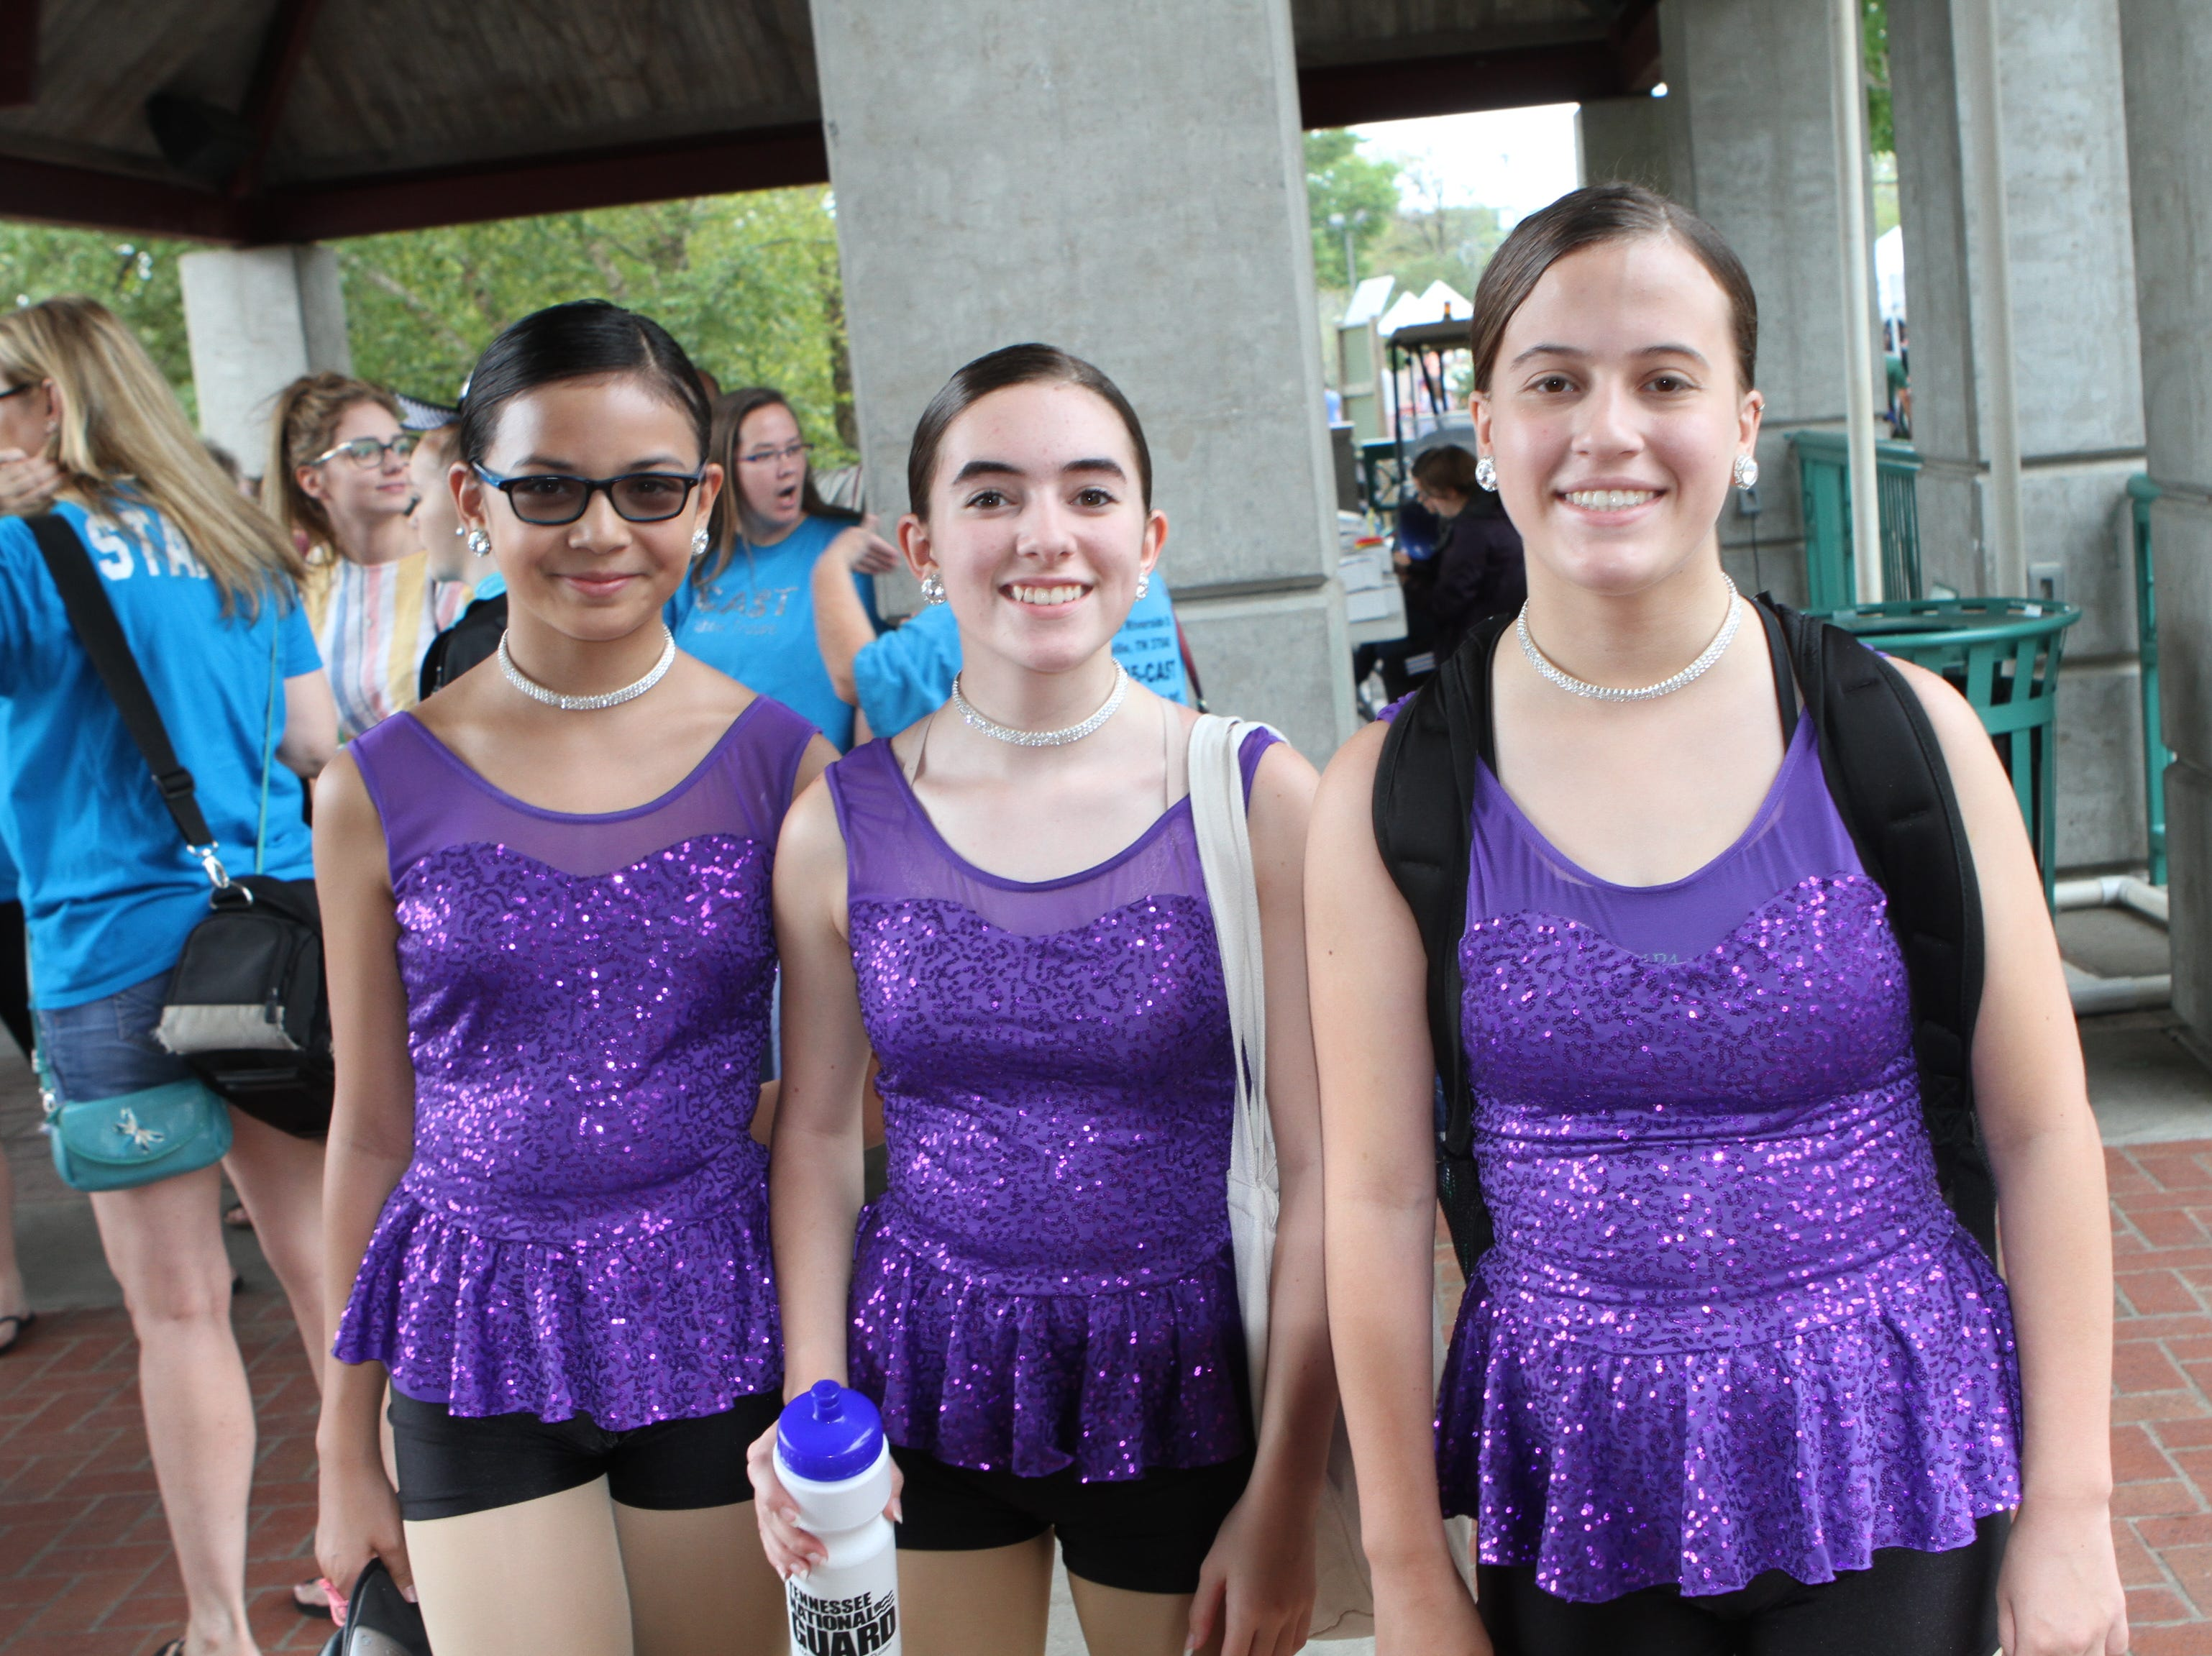 Giada Kem, Briana Howard and Gracie Logan of Lana's Dance Center get ready to perform at Clarksville Riverfest on Saturday, Sept. 8, 2018.